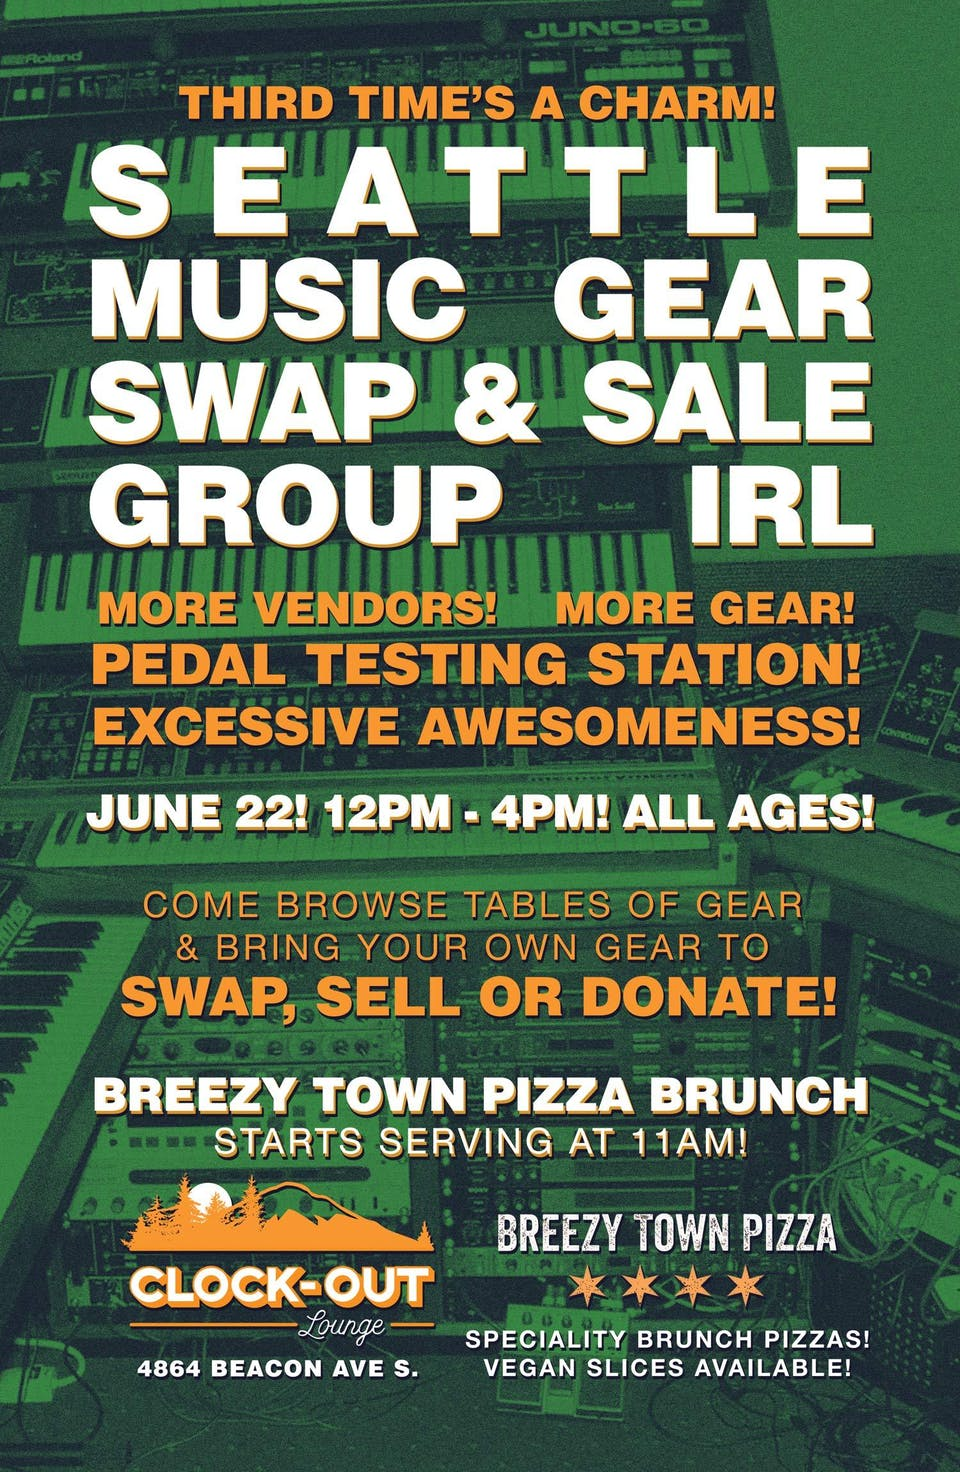 Seattle Music Gear Swap & Sale